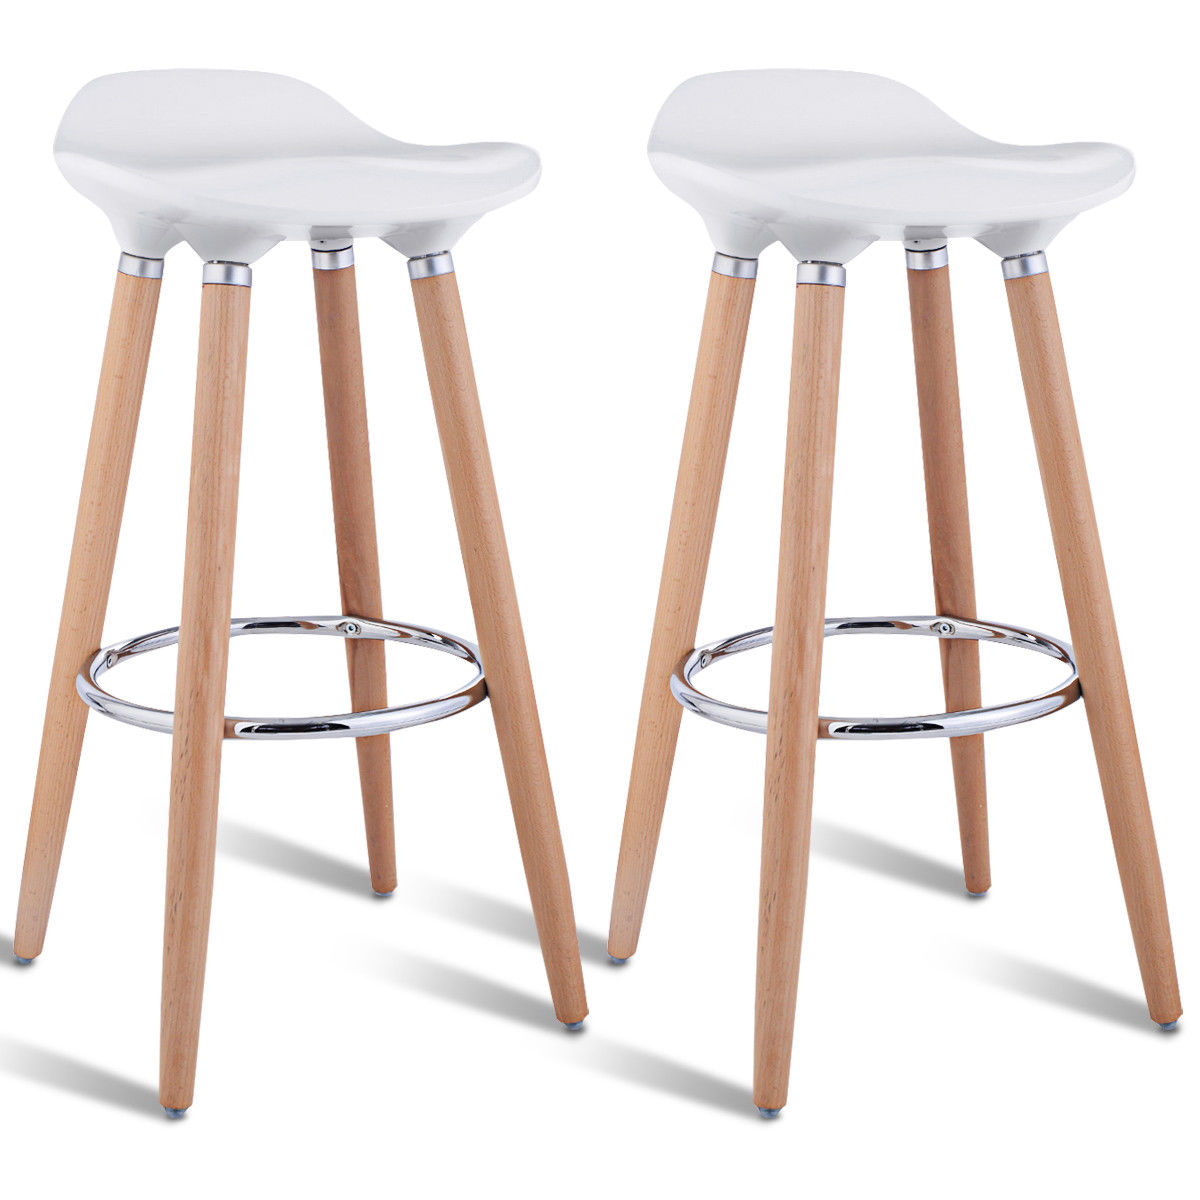 Costway Set Of 2 ABS Bar Stool Breakfast Barstool W/ Wooden Legs Kitchen Furniture White